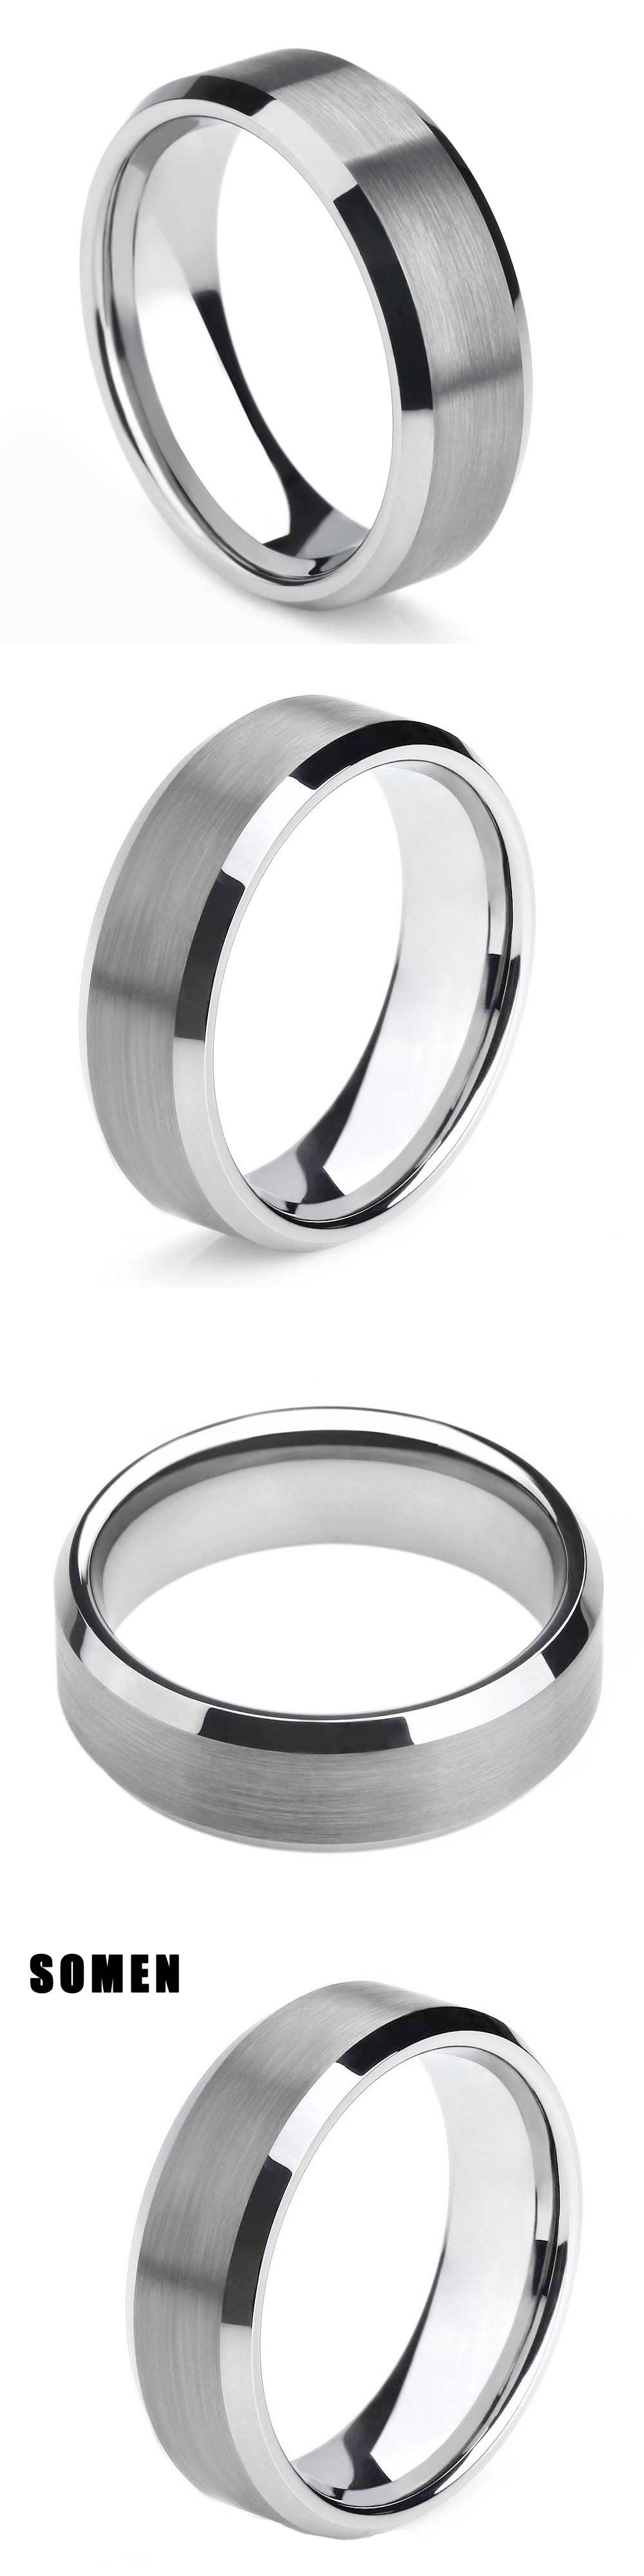 collections carbide tungsten range mattblackring rings black custom best made australian